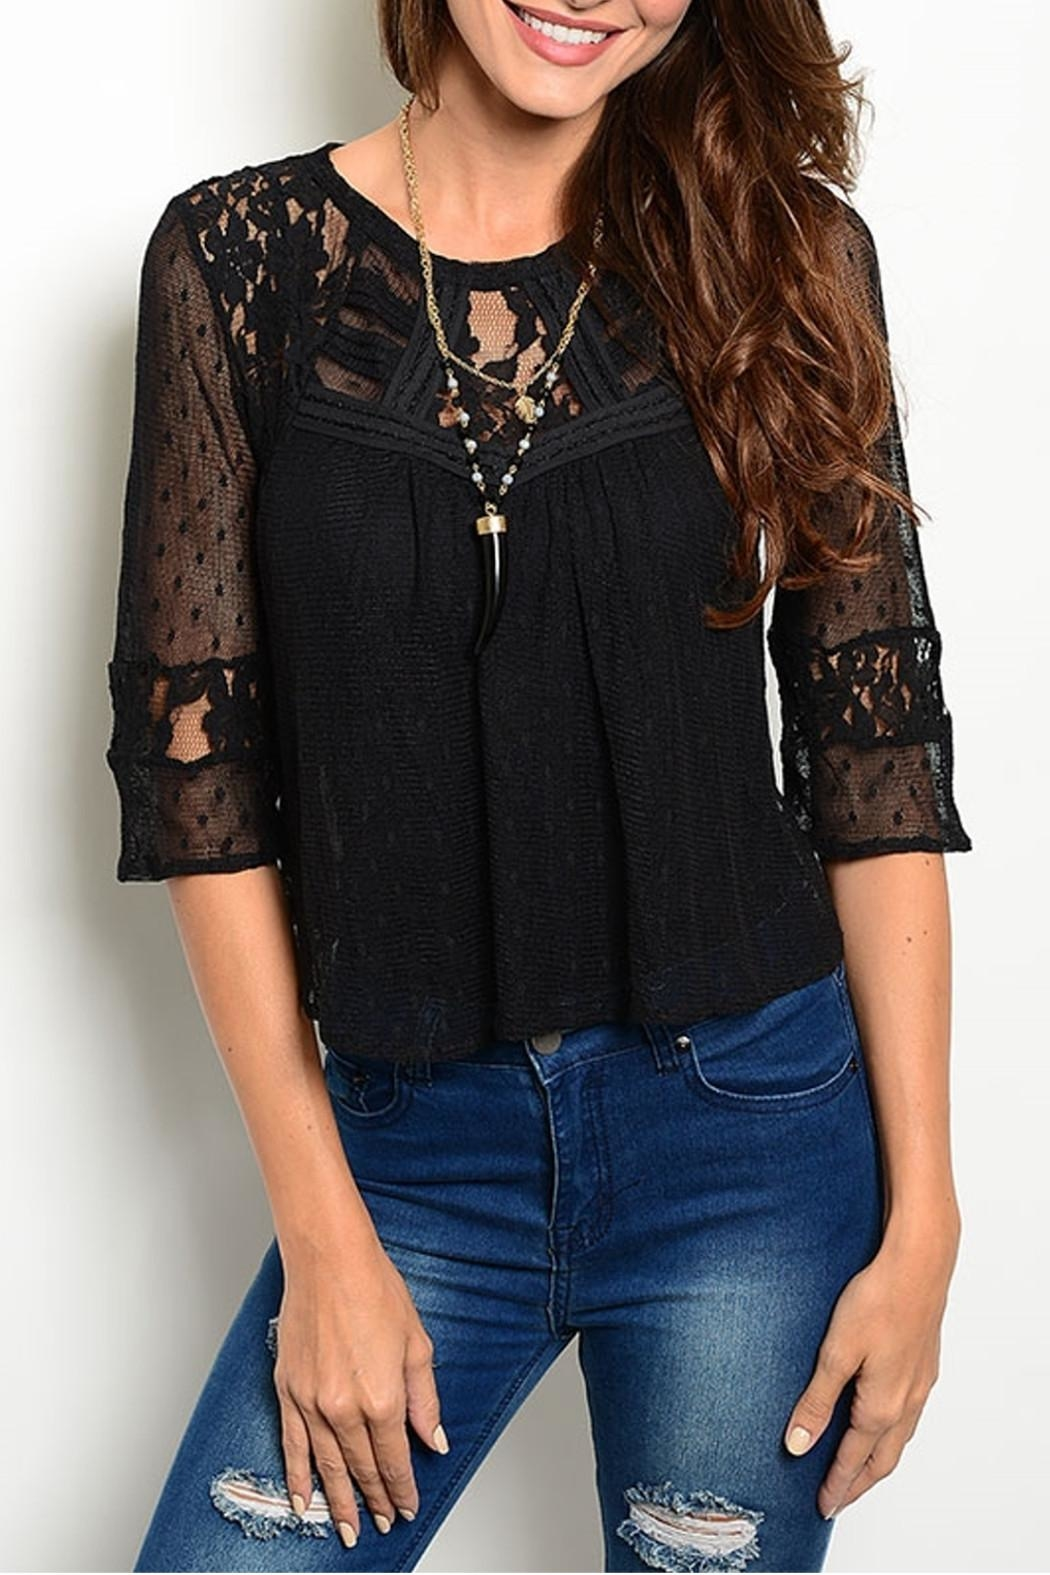 Ark & Co. Black Lace Top - Main Image